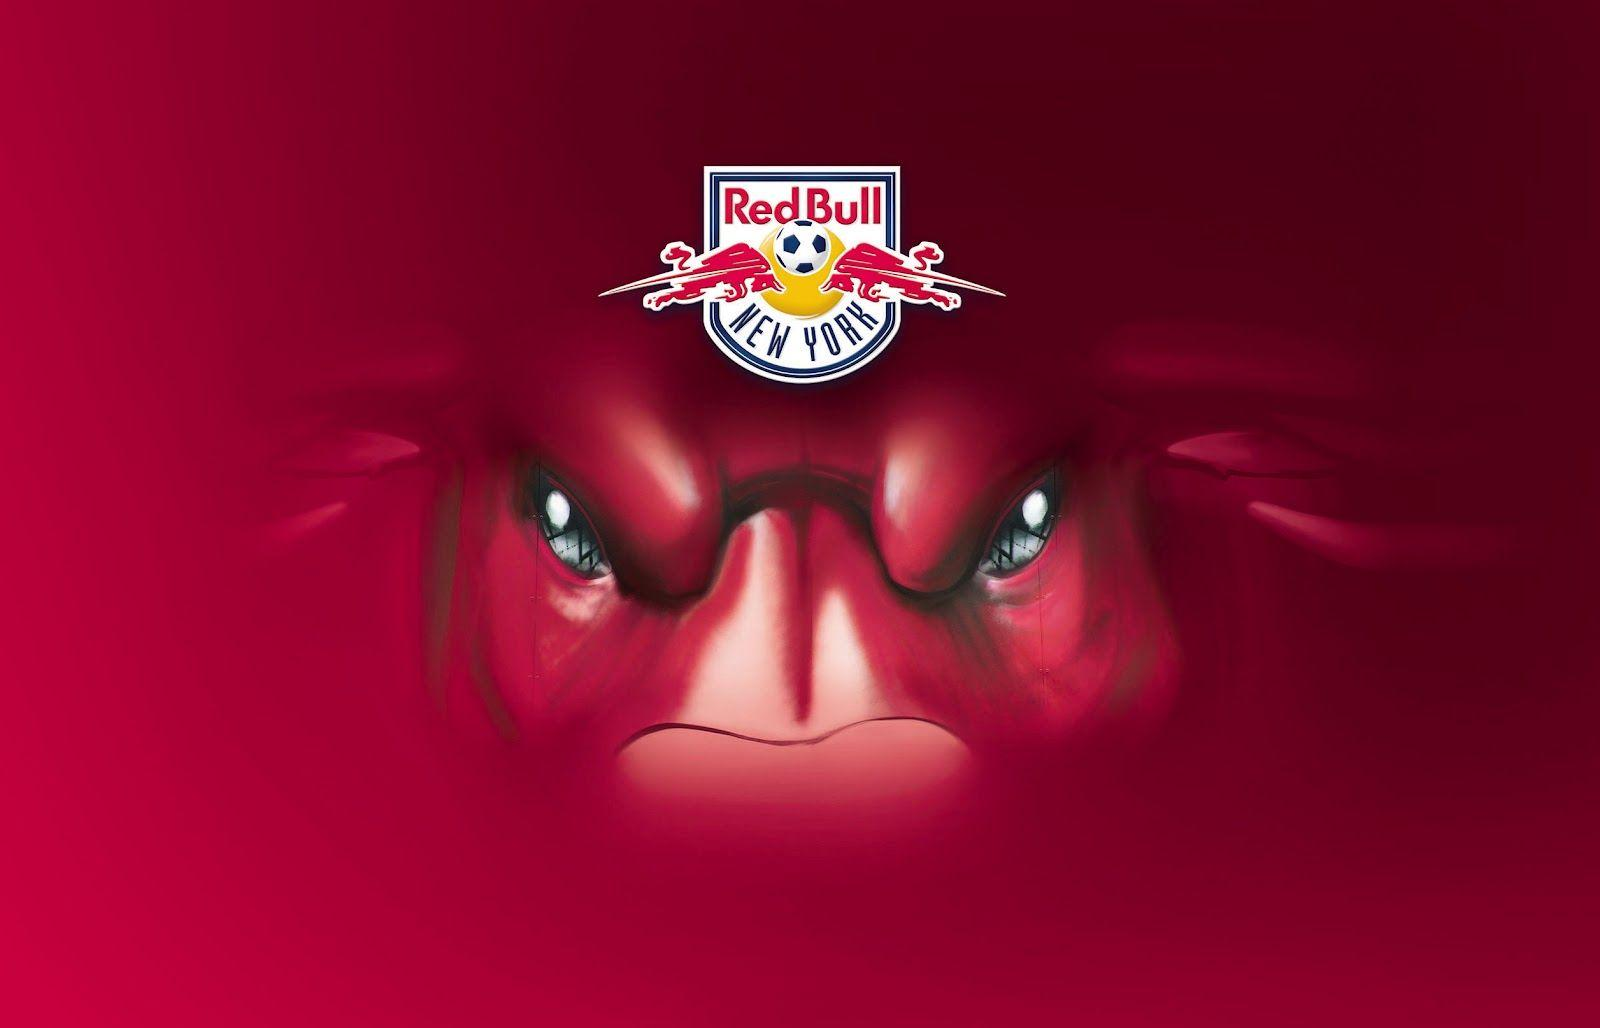 Red Bull Logo Wallpapers - Wallpaper Cave